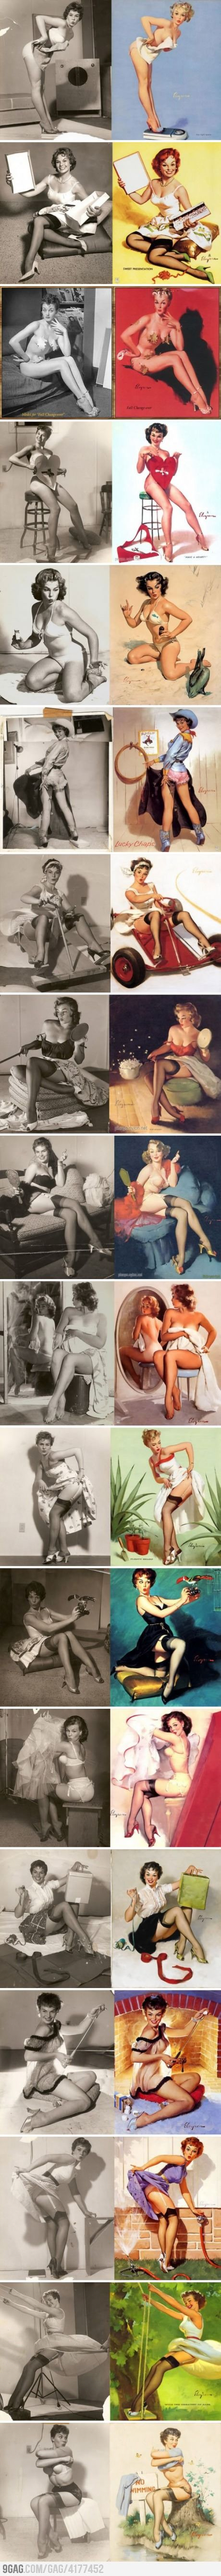 Real girls vs. Pin-up girls. Love this.